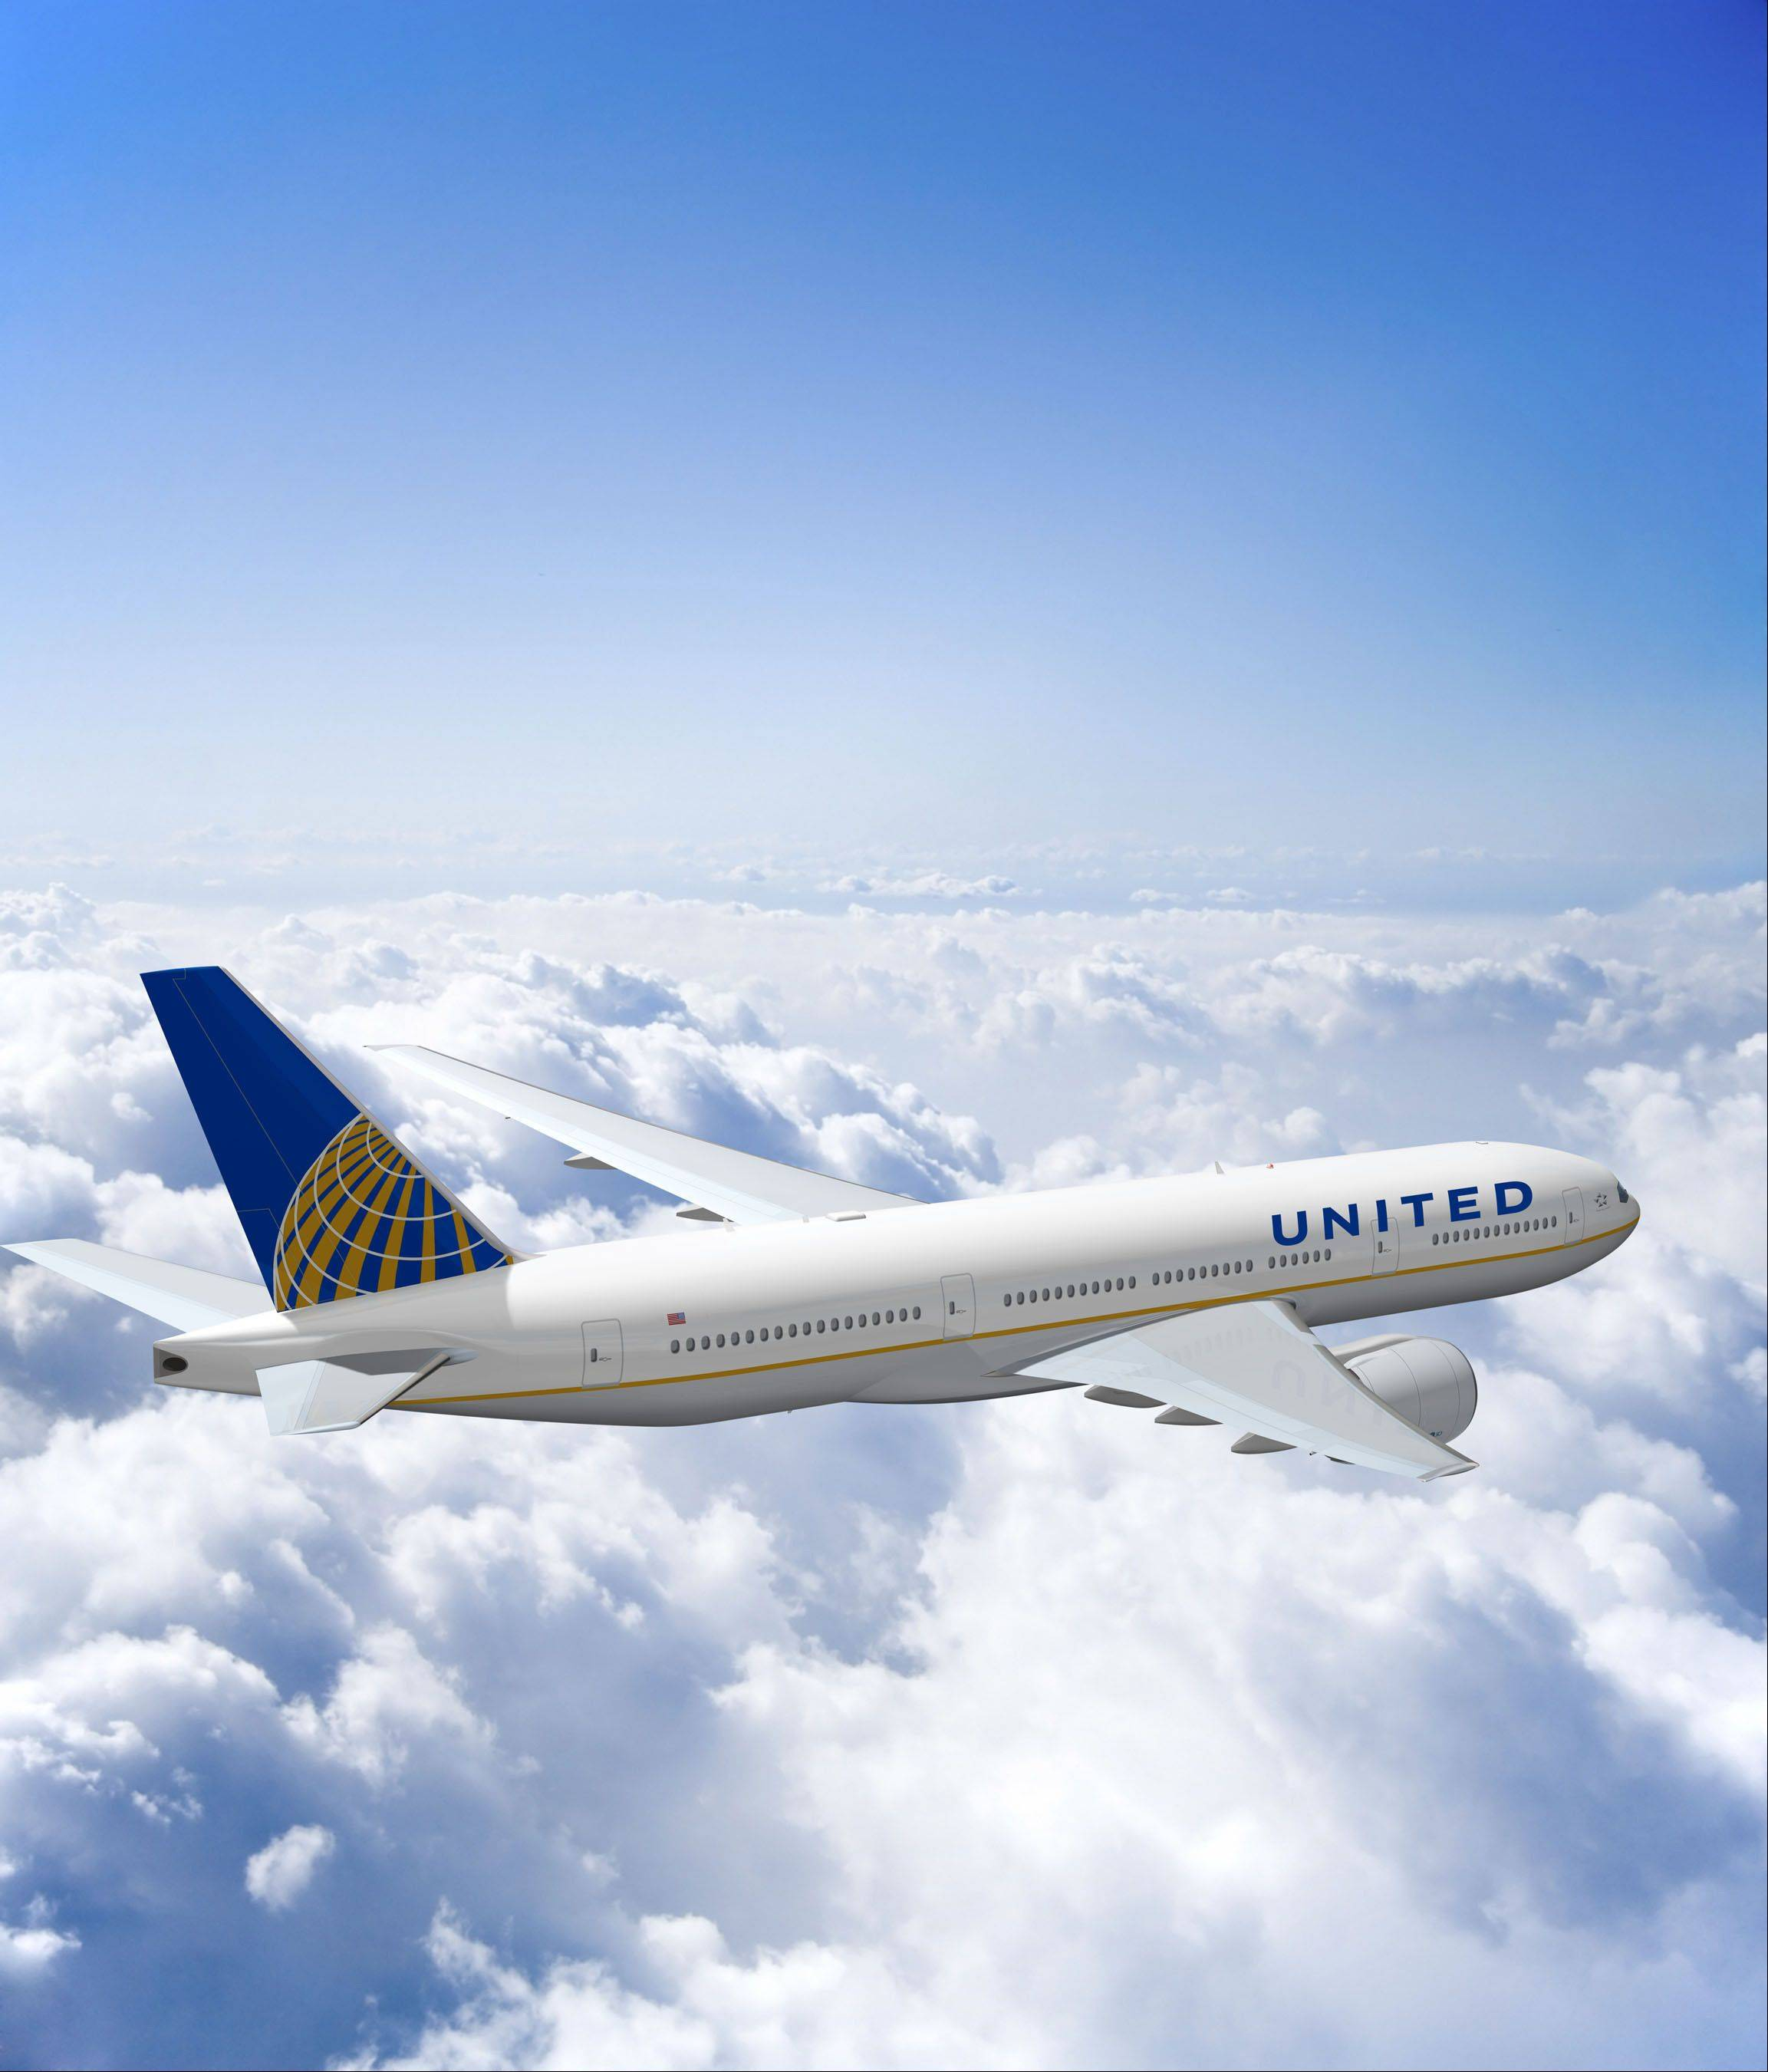 United Airlines plans to add flat-beed seats and Wi-Fi as part of $500 million in improvements.